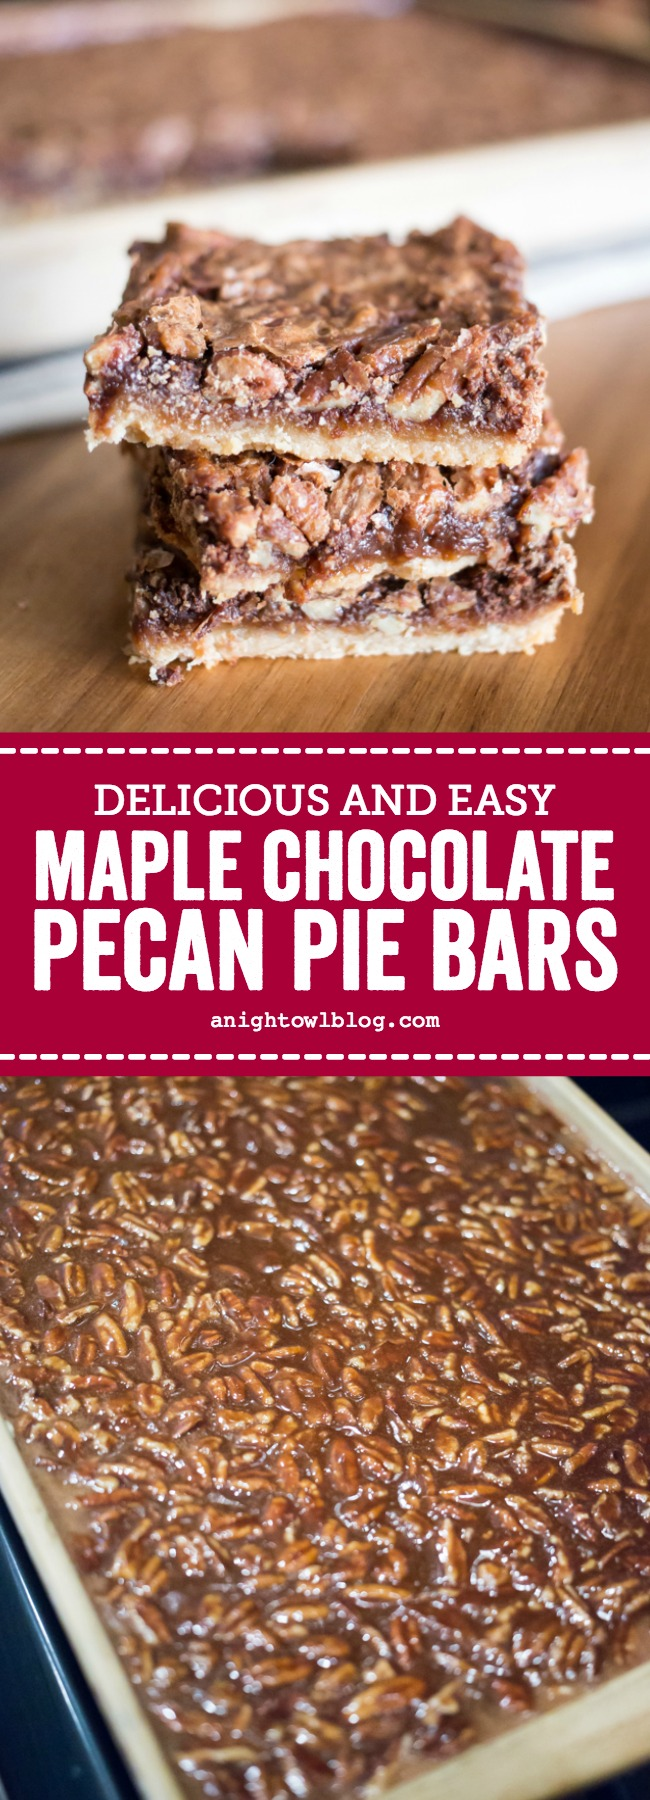 Perfect for the holidays, these easy and delicious Maple Chocolate Pecan Pie Bars will feed a crowd!